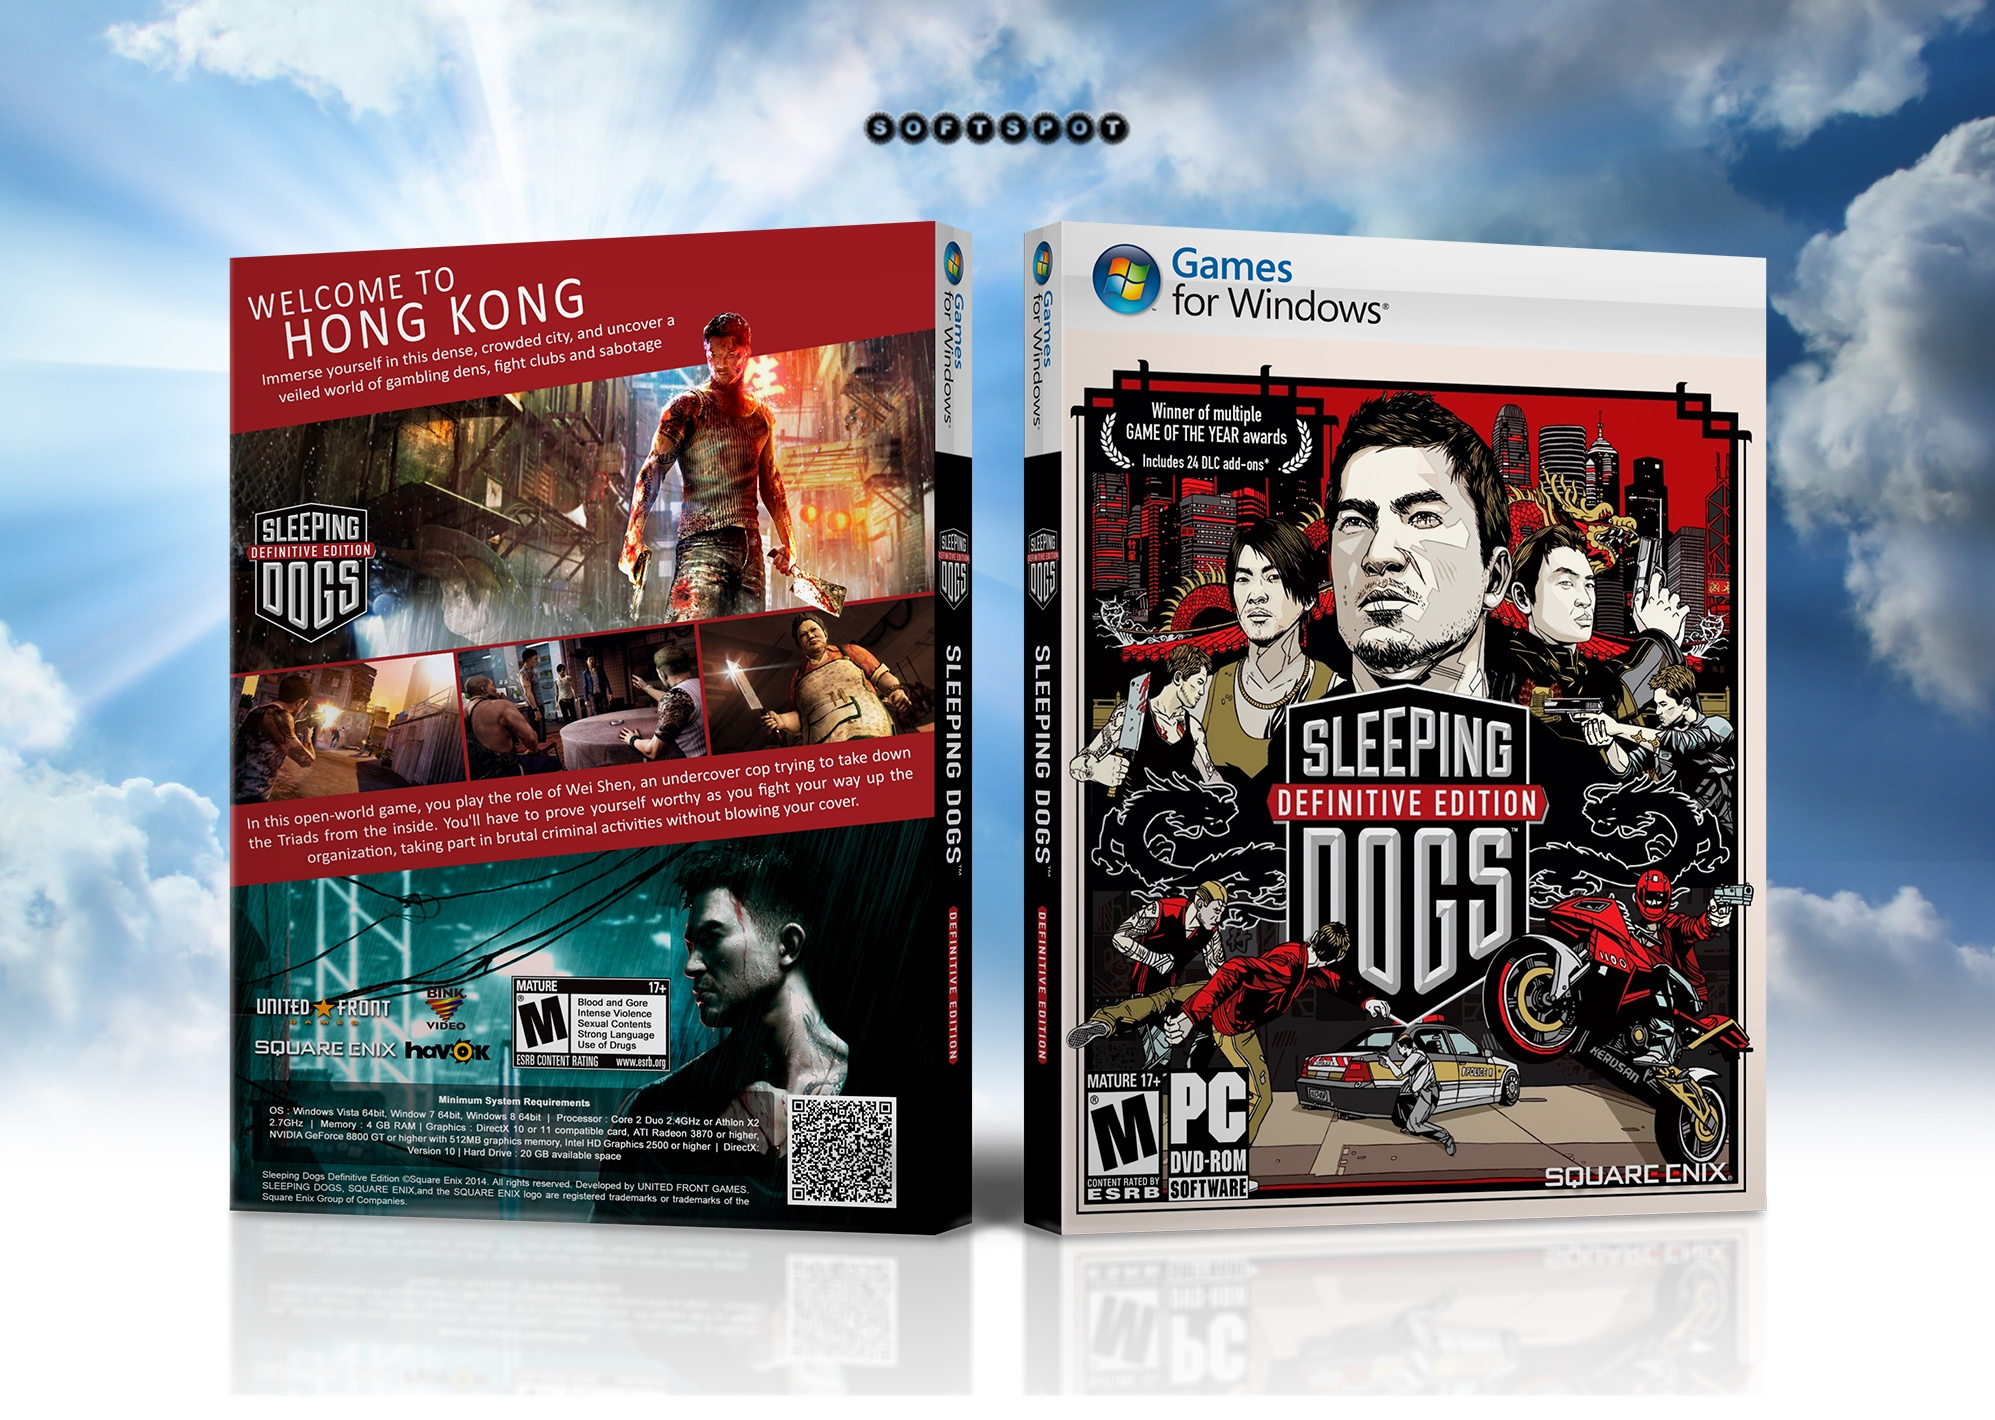 Sleeping Dogs: Definitive Edition box cover